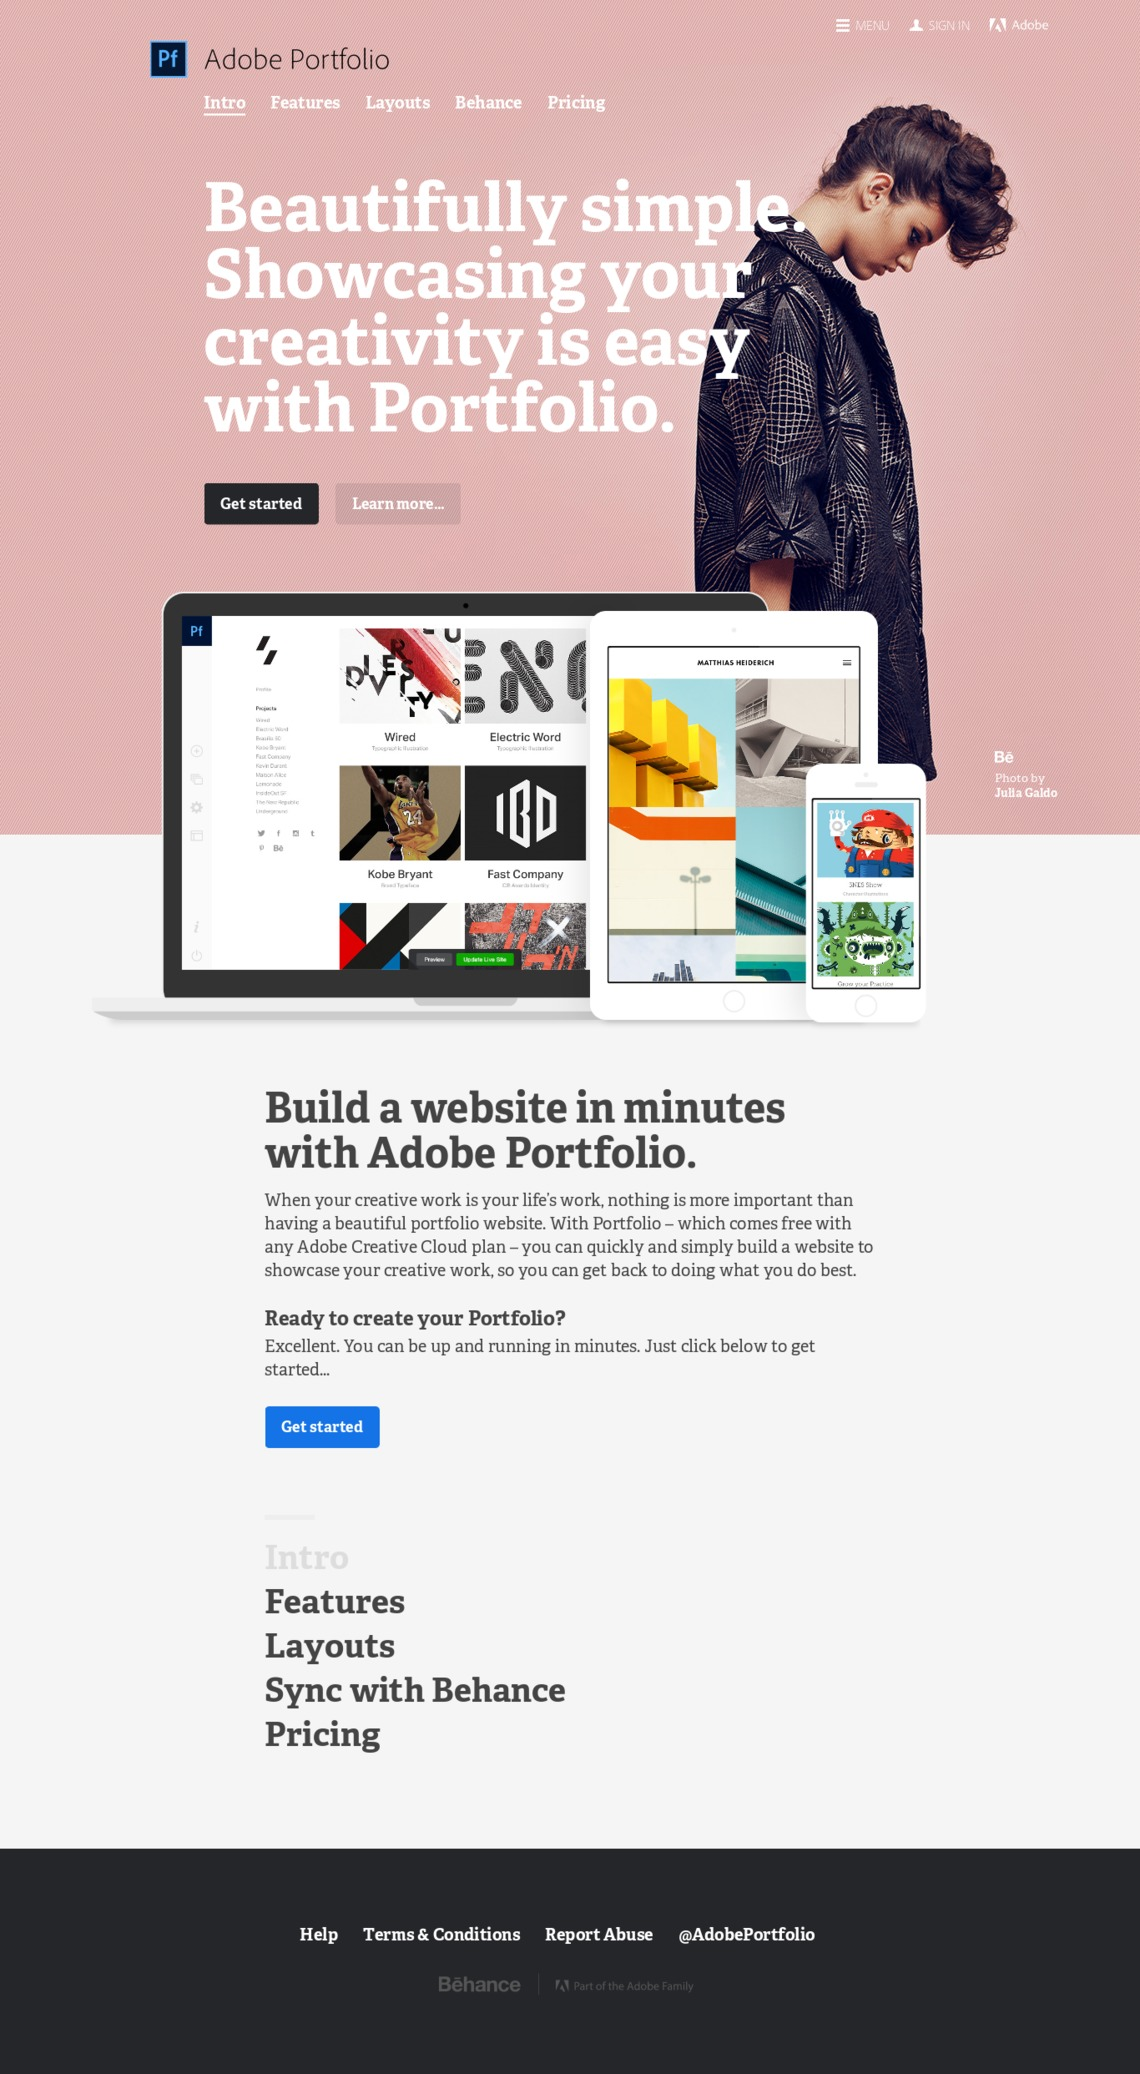 Adobe Portfolio | Build your own personalized website